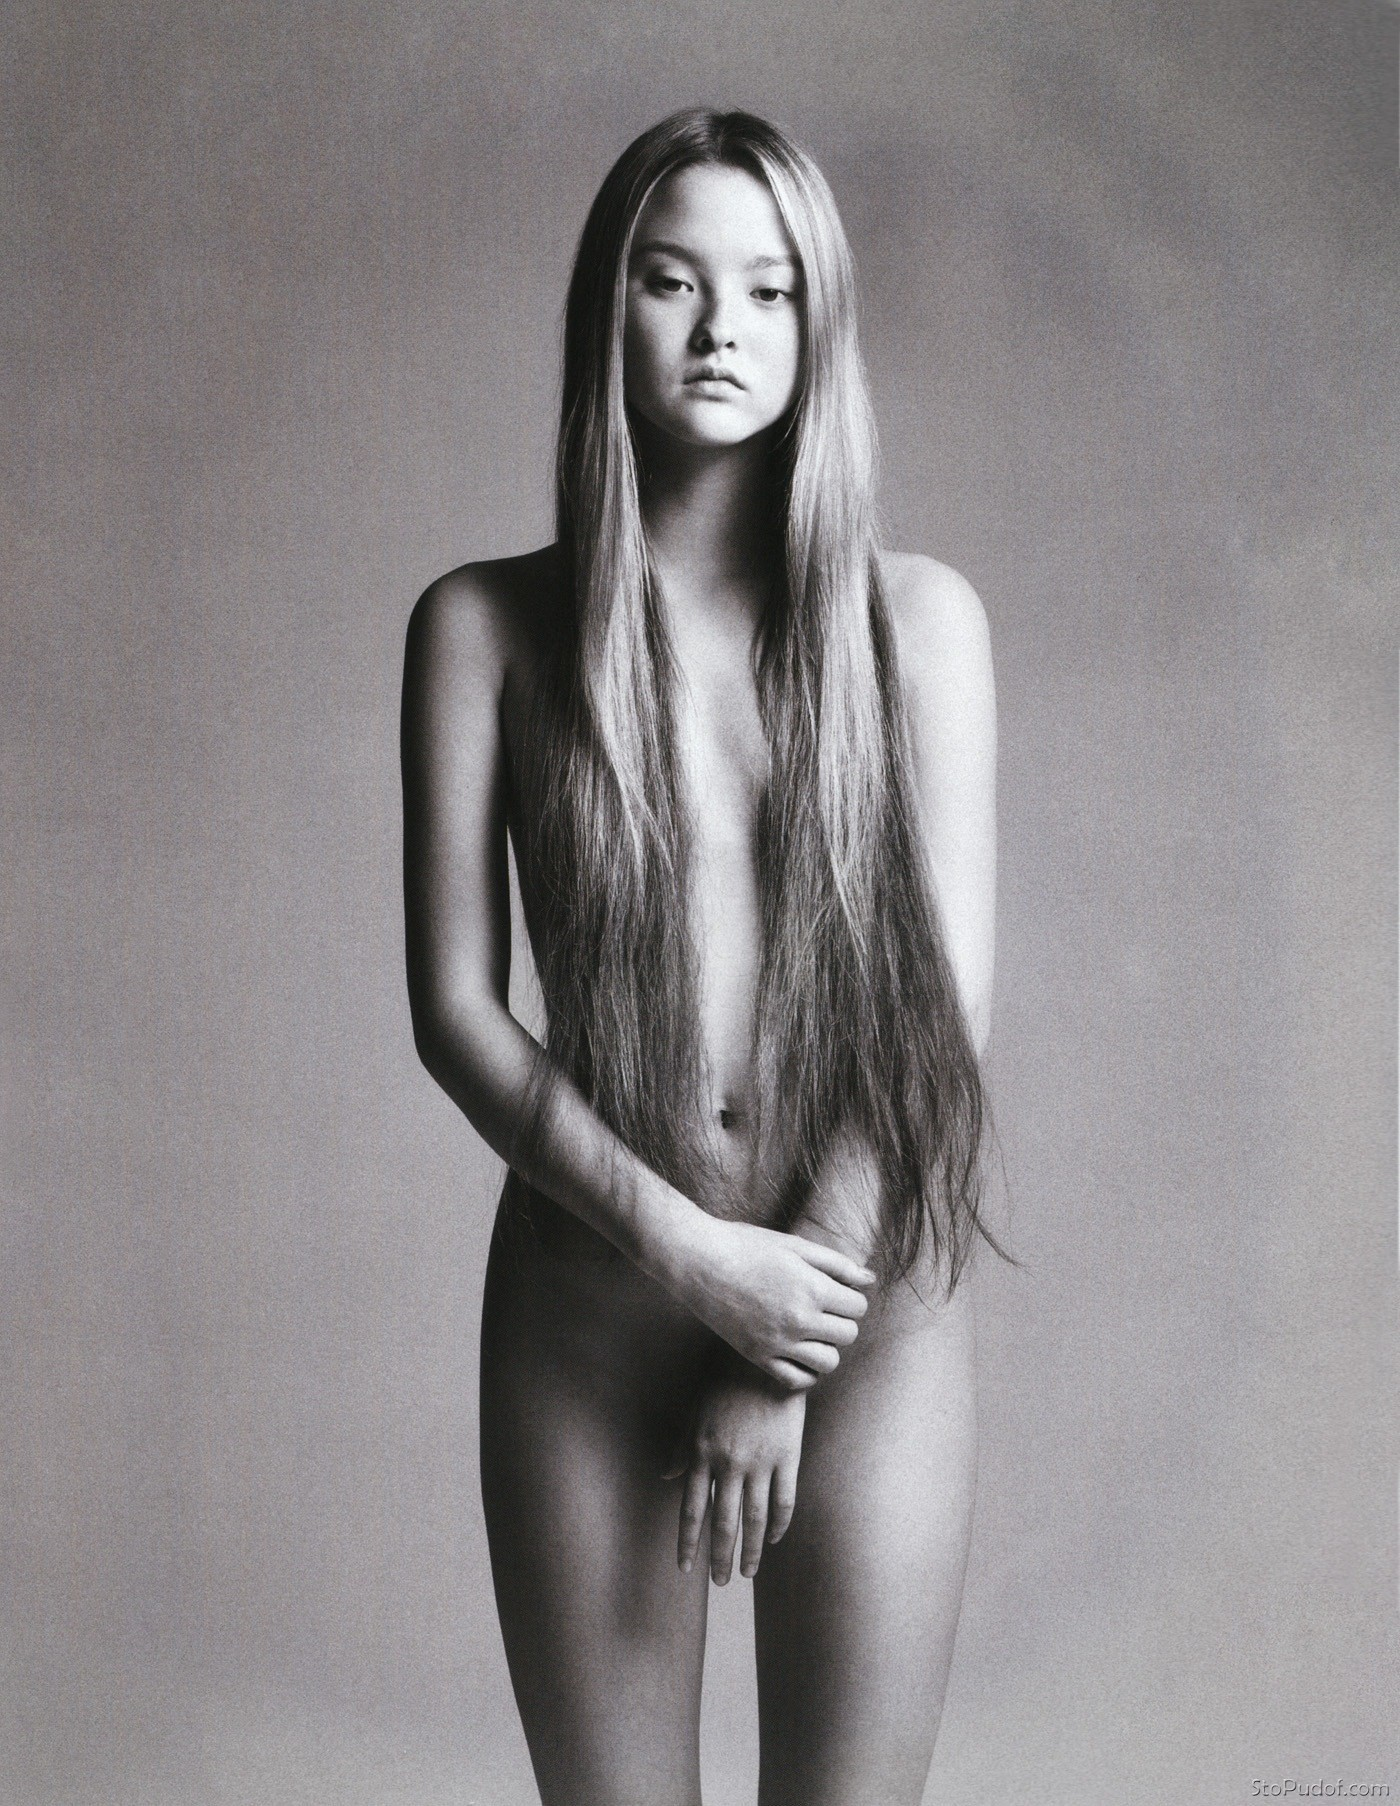 new Devon Aoki nude photo - UkPhotoSafari